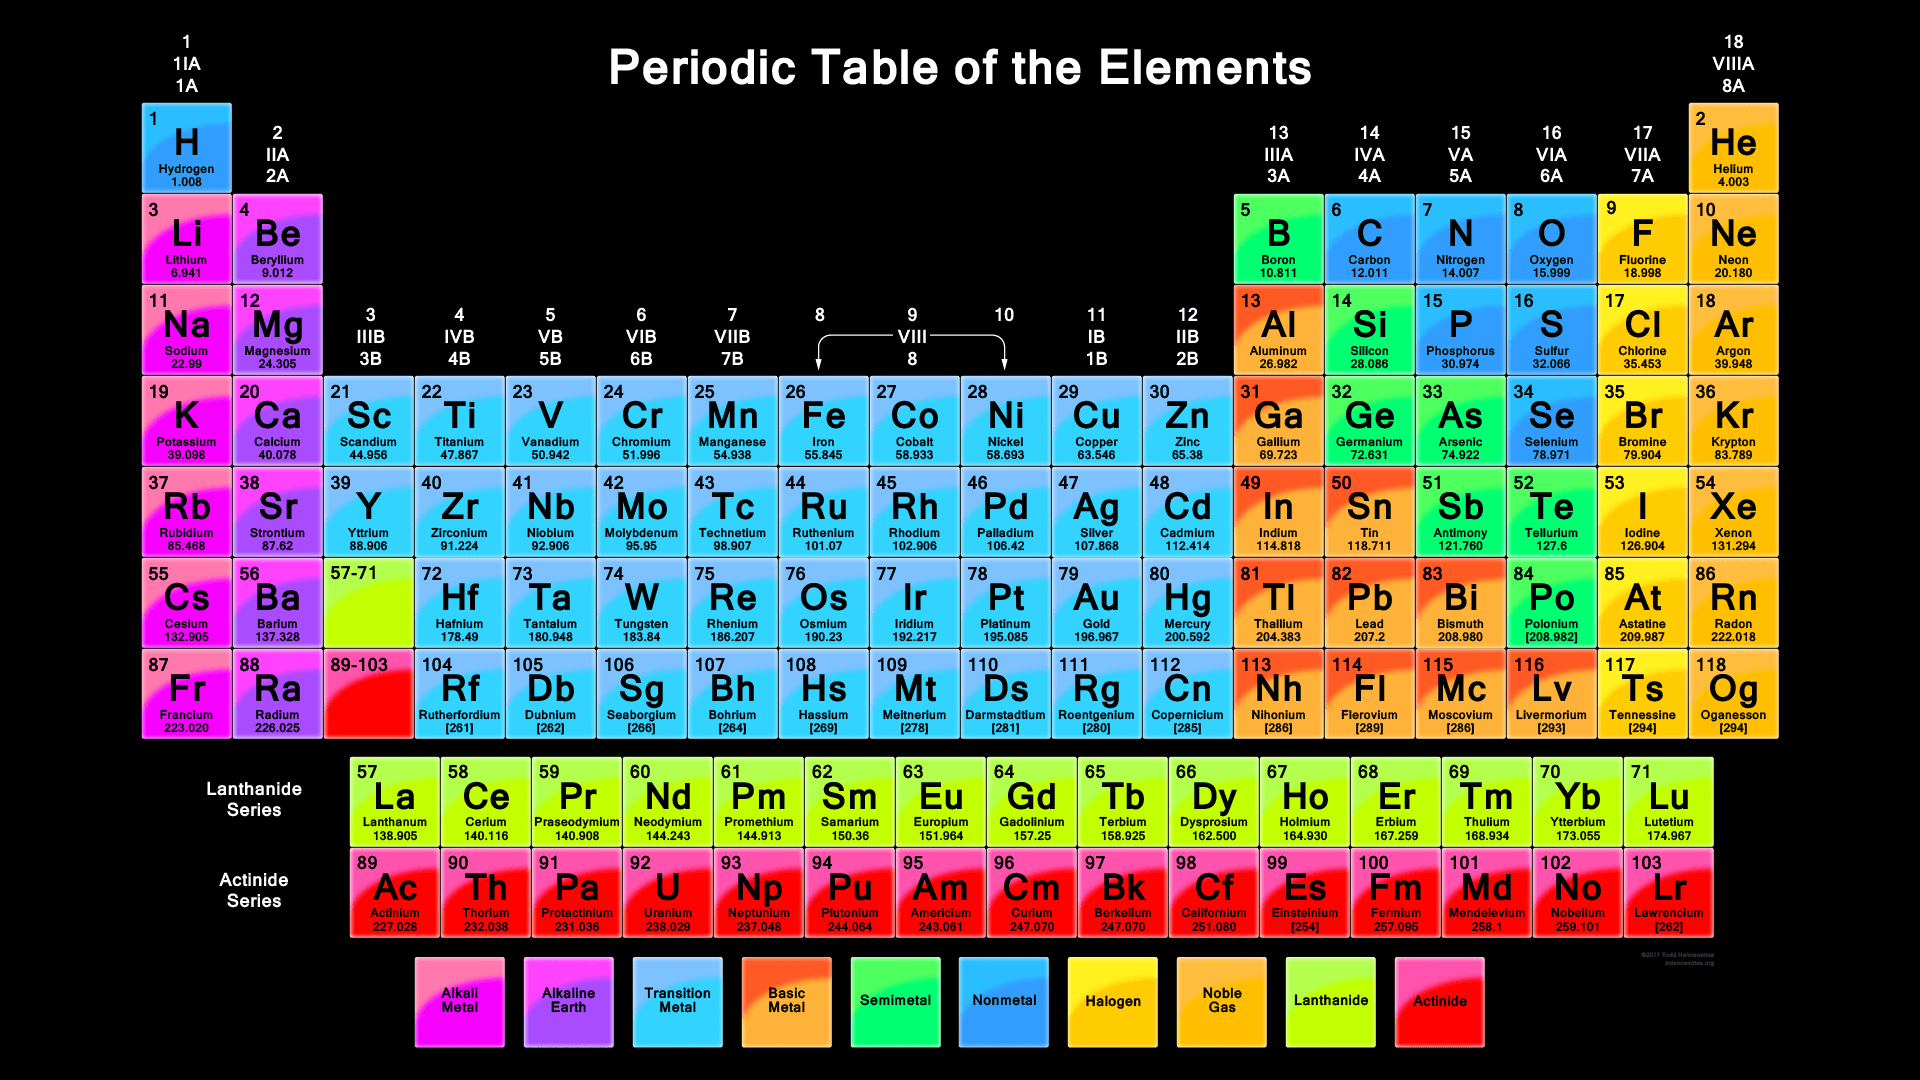 Periodic table pdf 2018 edition with 118 elements table on whitetable on black urtaz Images